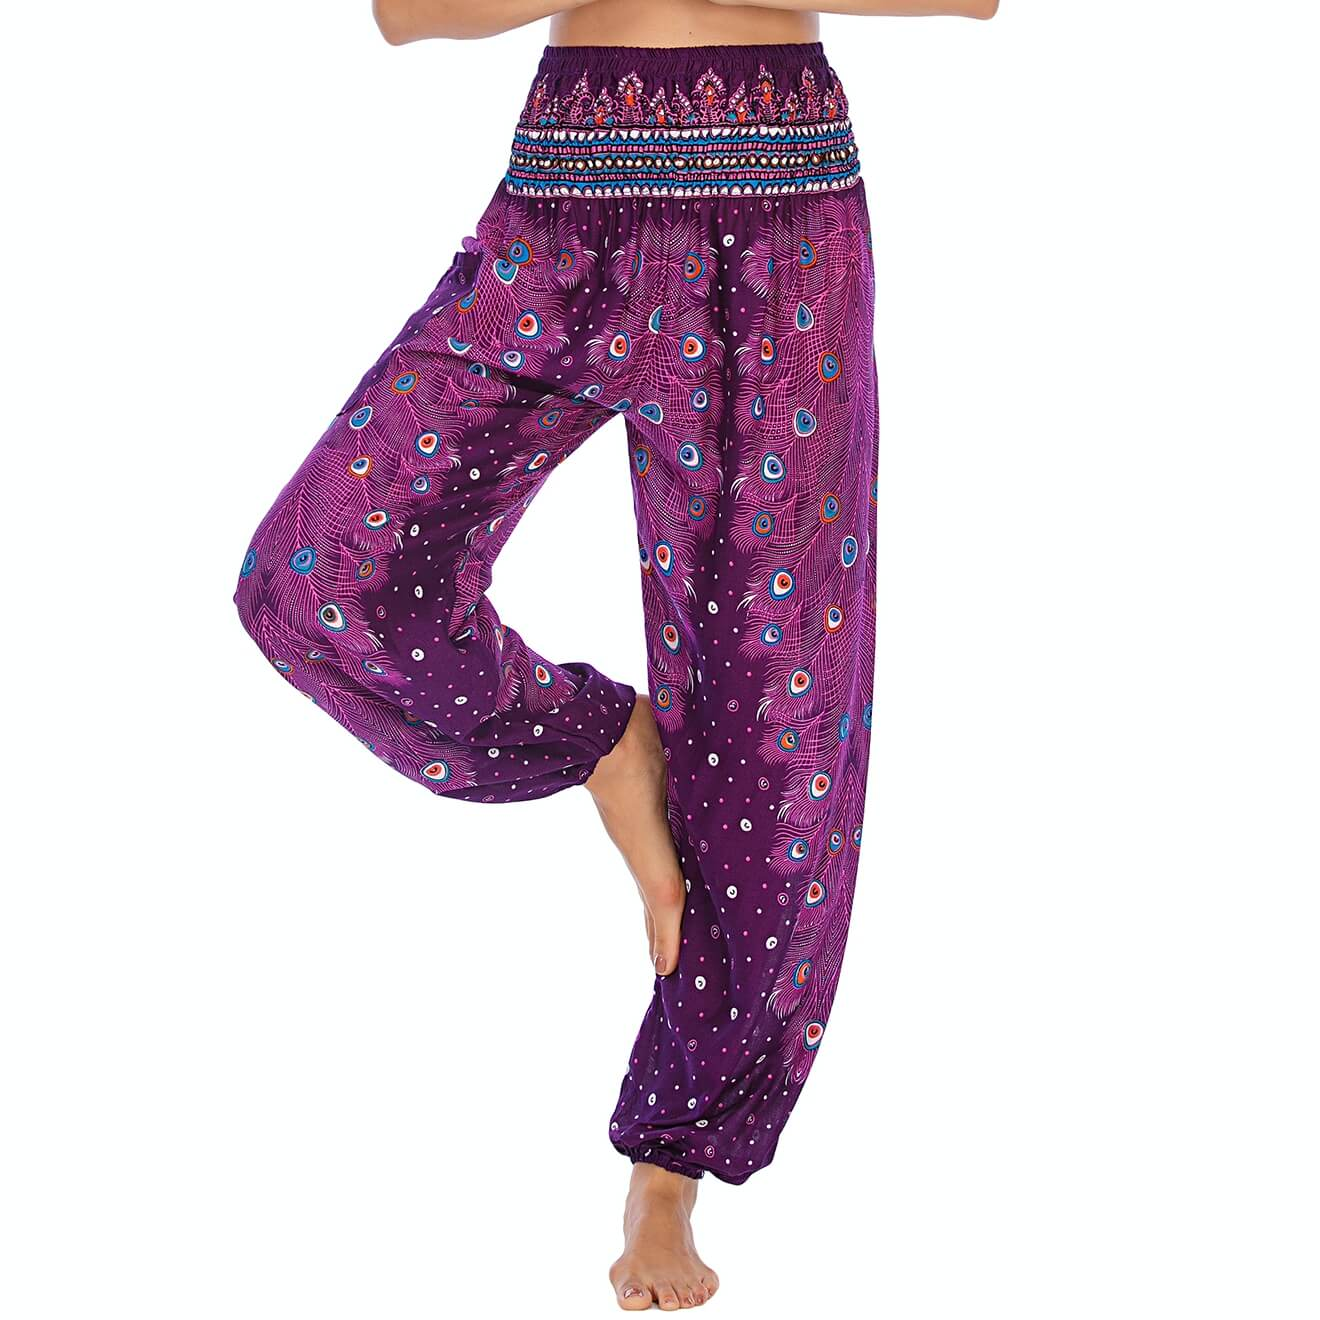 Empower your energy flow and blood circulation during yoga practice with these Hummingbird Peacock Smocked Waist Yoga Harem Pants - Magenta. Featuring long peacock train feathers and colorful eyespots, these loose yoga pants are the must-have companion for your yoga journey, be it for asanas, pranayama, or meditation. Fit most body types with high rise smocked waist and elastic cuffed hems. Handmade by Thai people with breathable, soft, lightweight and quick dry fabric and natural dyeing techniques.